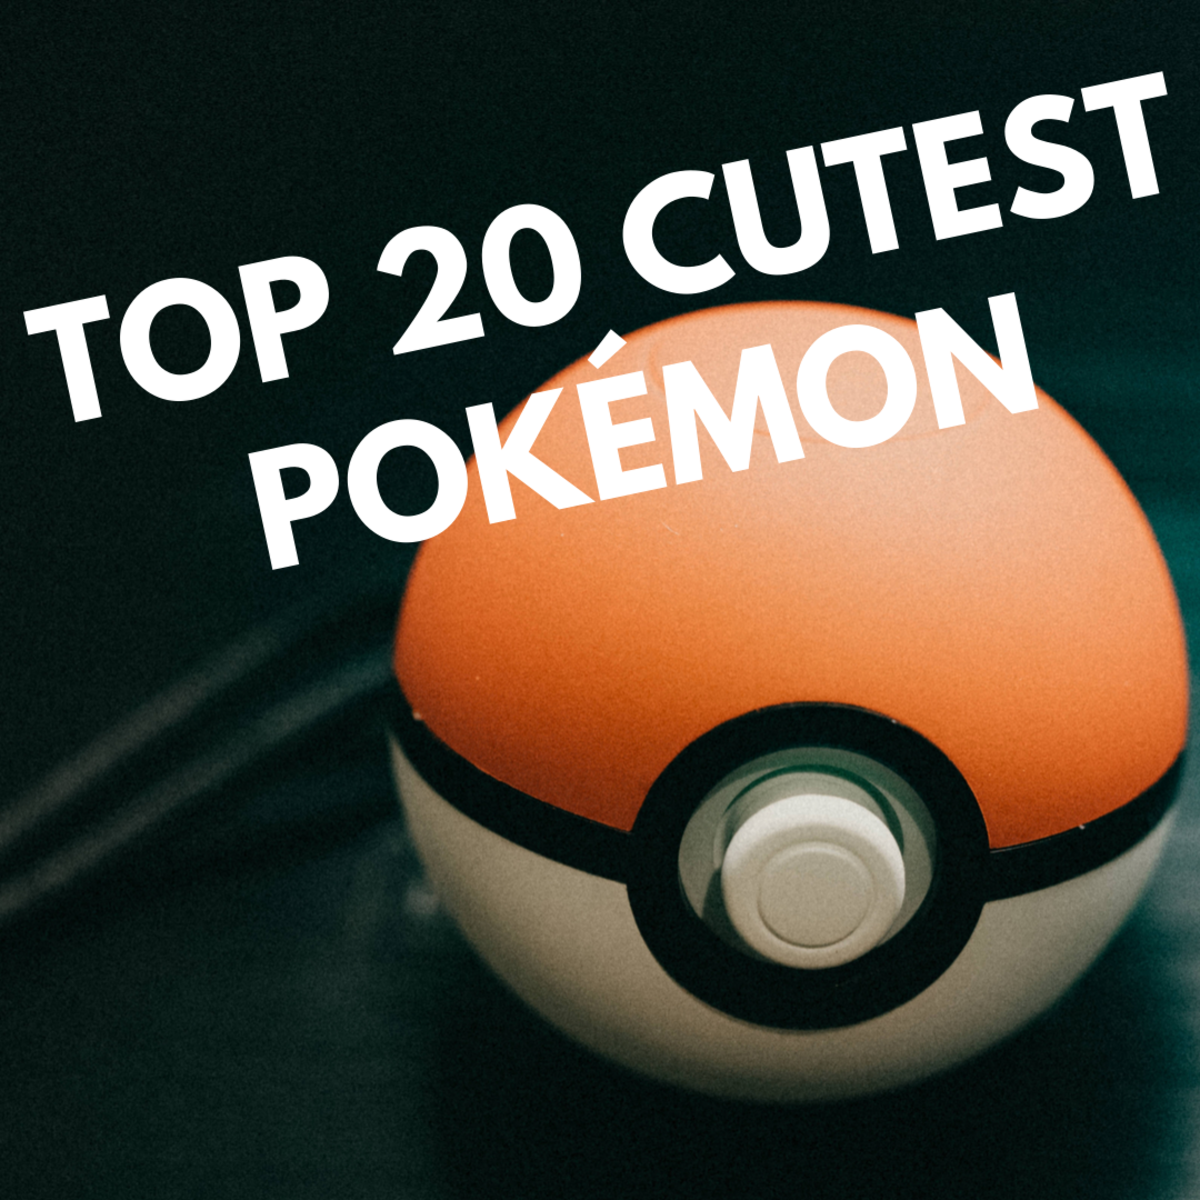 Top 20 Cutest Pokémon (With Pictures)